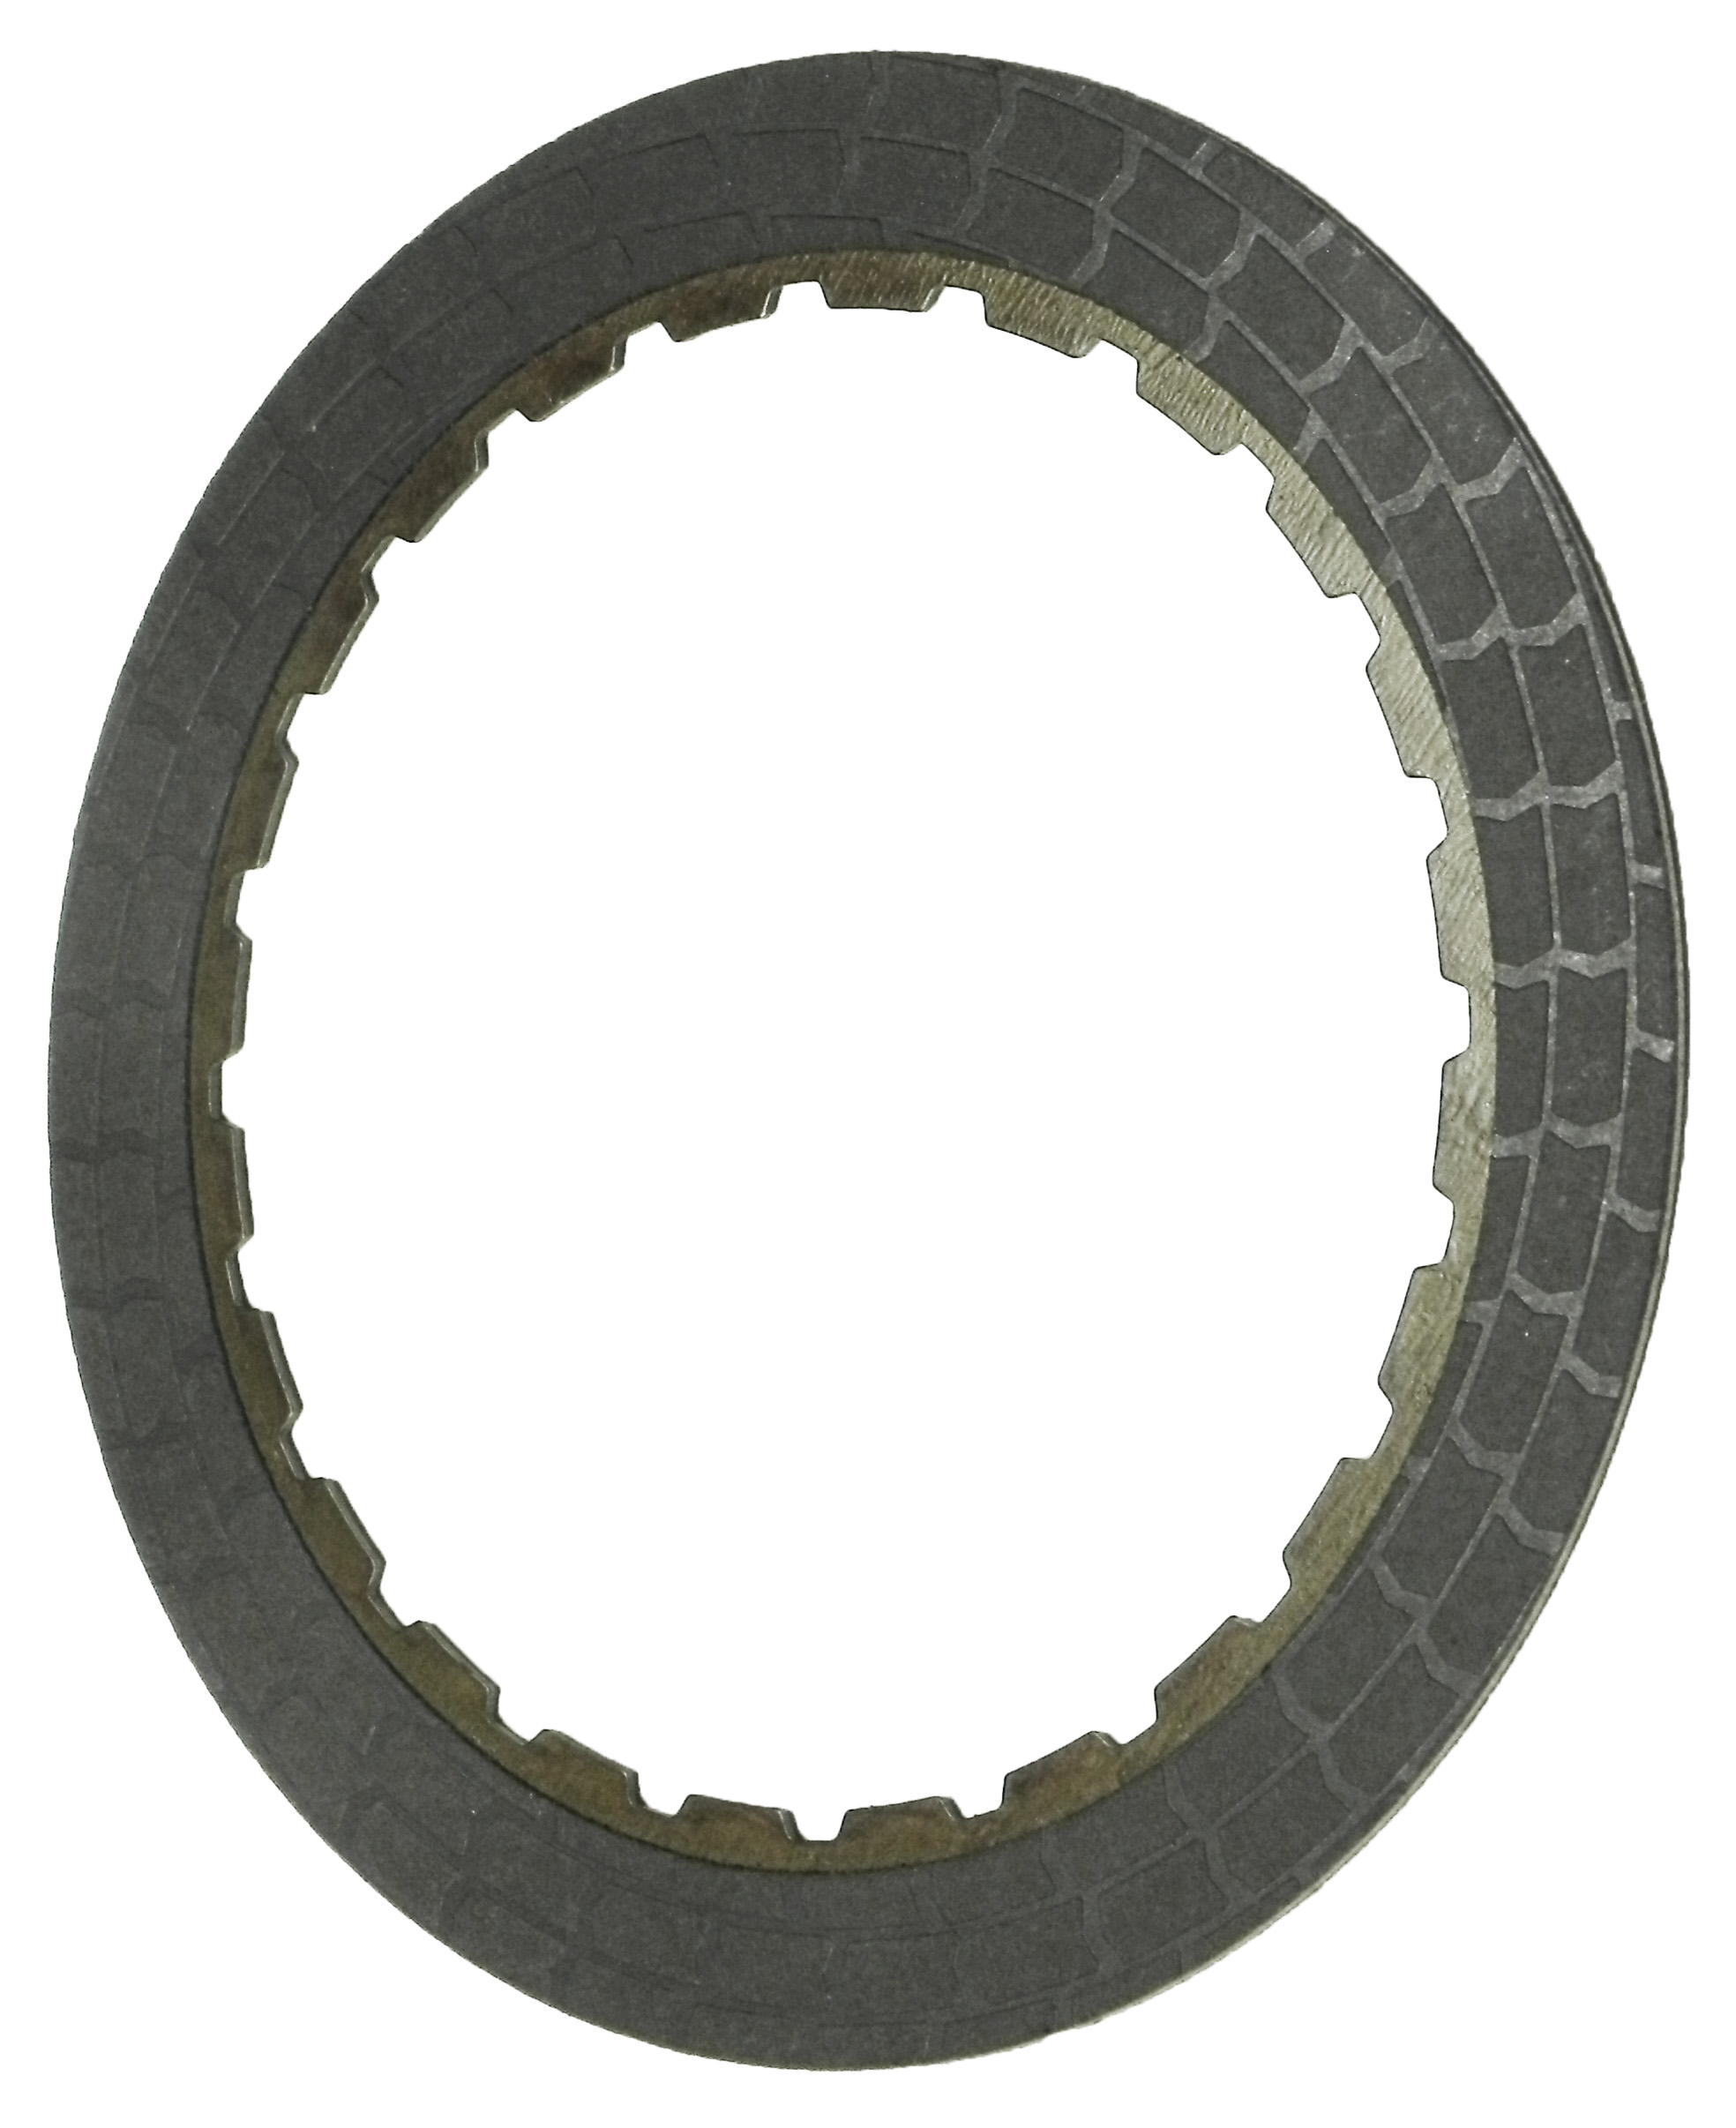 RH558565 | 2009-ON Friction Clutch Plate (HT) Hybrid Technology 4, 5, 6 Clutch Proprietary High Energy (HT)